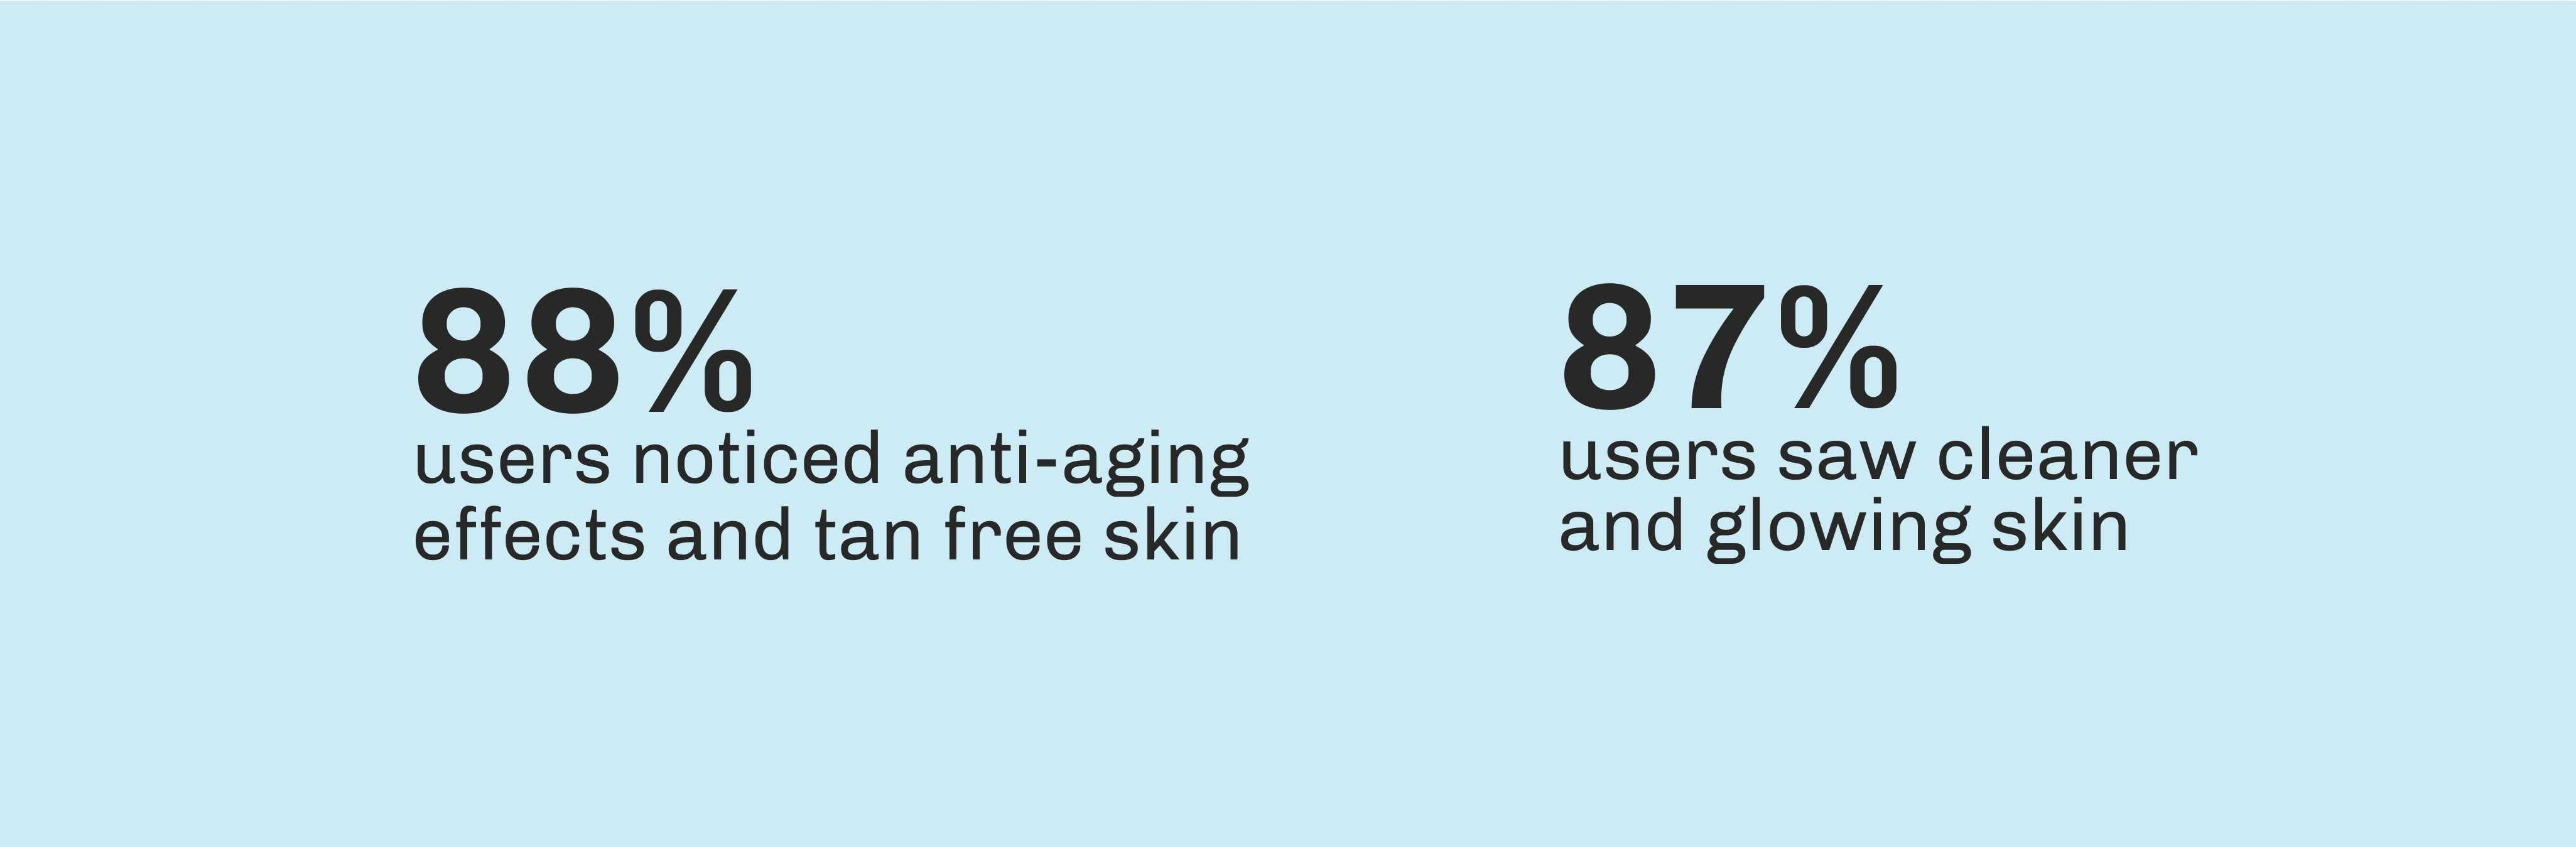 10% Niacinamide with Zinc and Kakadu Plum face Serum| Helps protect skin's barrier |  Repair signs of damage and wrinkles | Reduces large pores and sebum production | Encourages skin elasticity, clear skin, and suppleness | Decreases skin redness, patchiness and acne | Prevents moisture loss and keeps skin hydrated